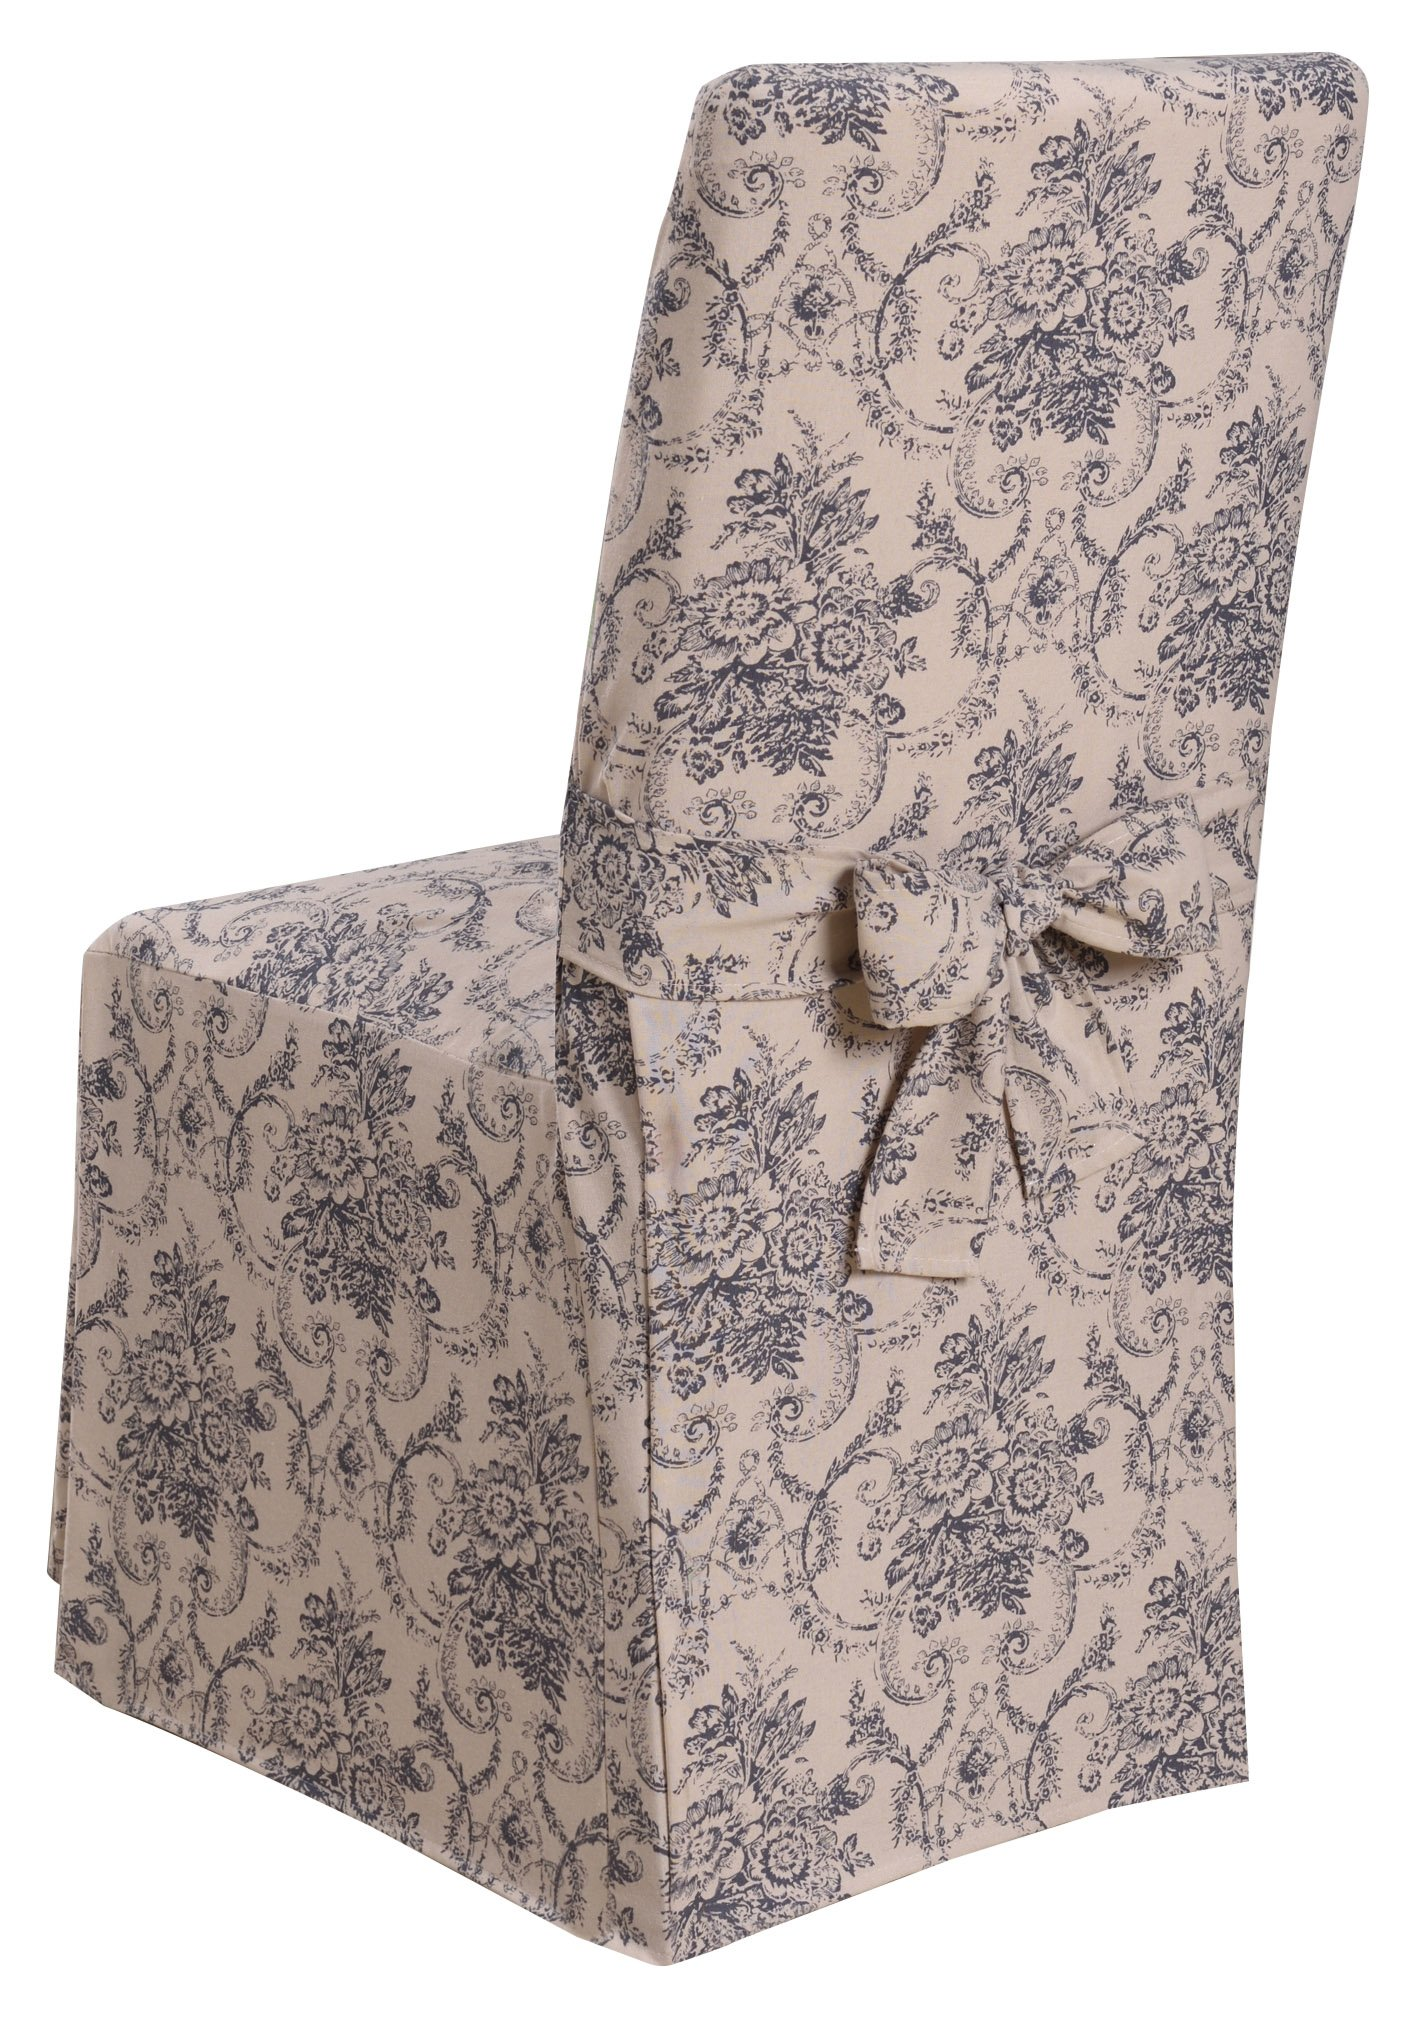 Madison Chateau SLIPCOVER Dining Room Chair SLICOVER, Navy